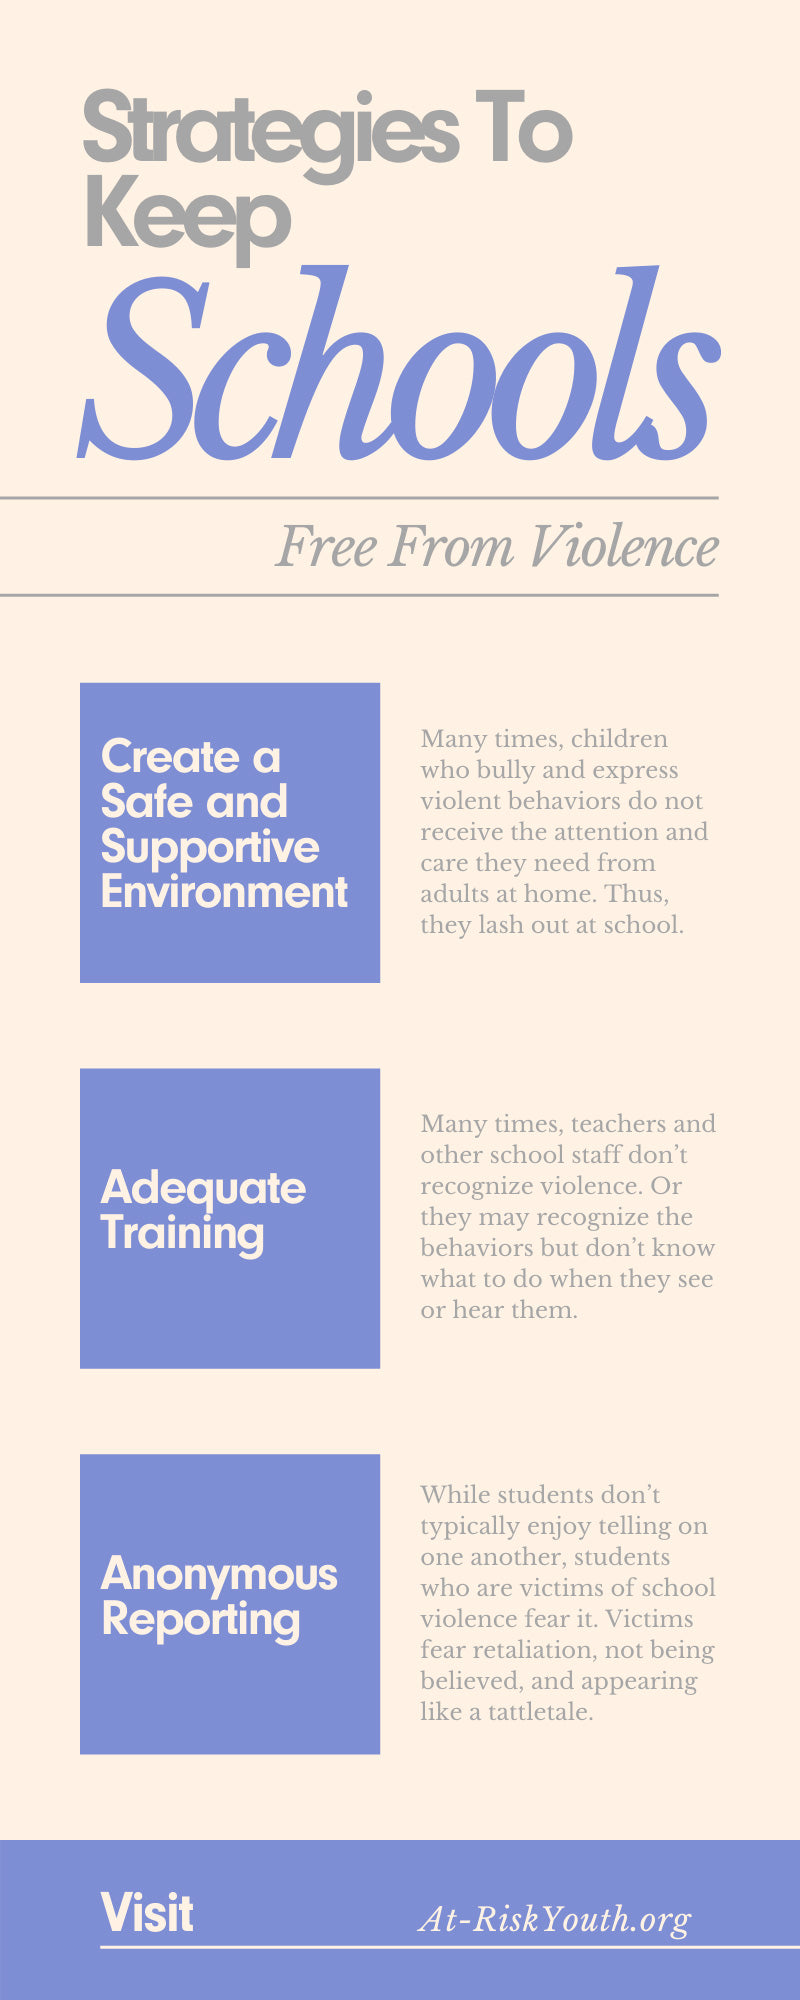 Strategies To Keep Schools Free From Violence